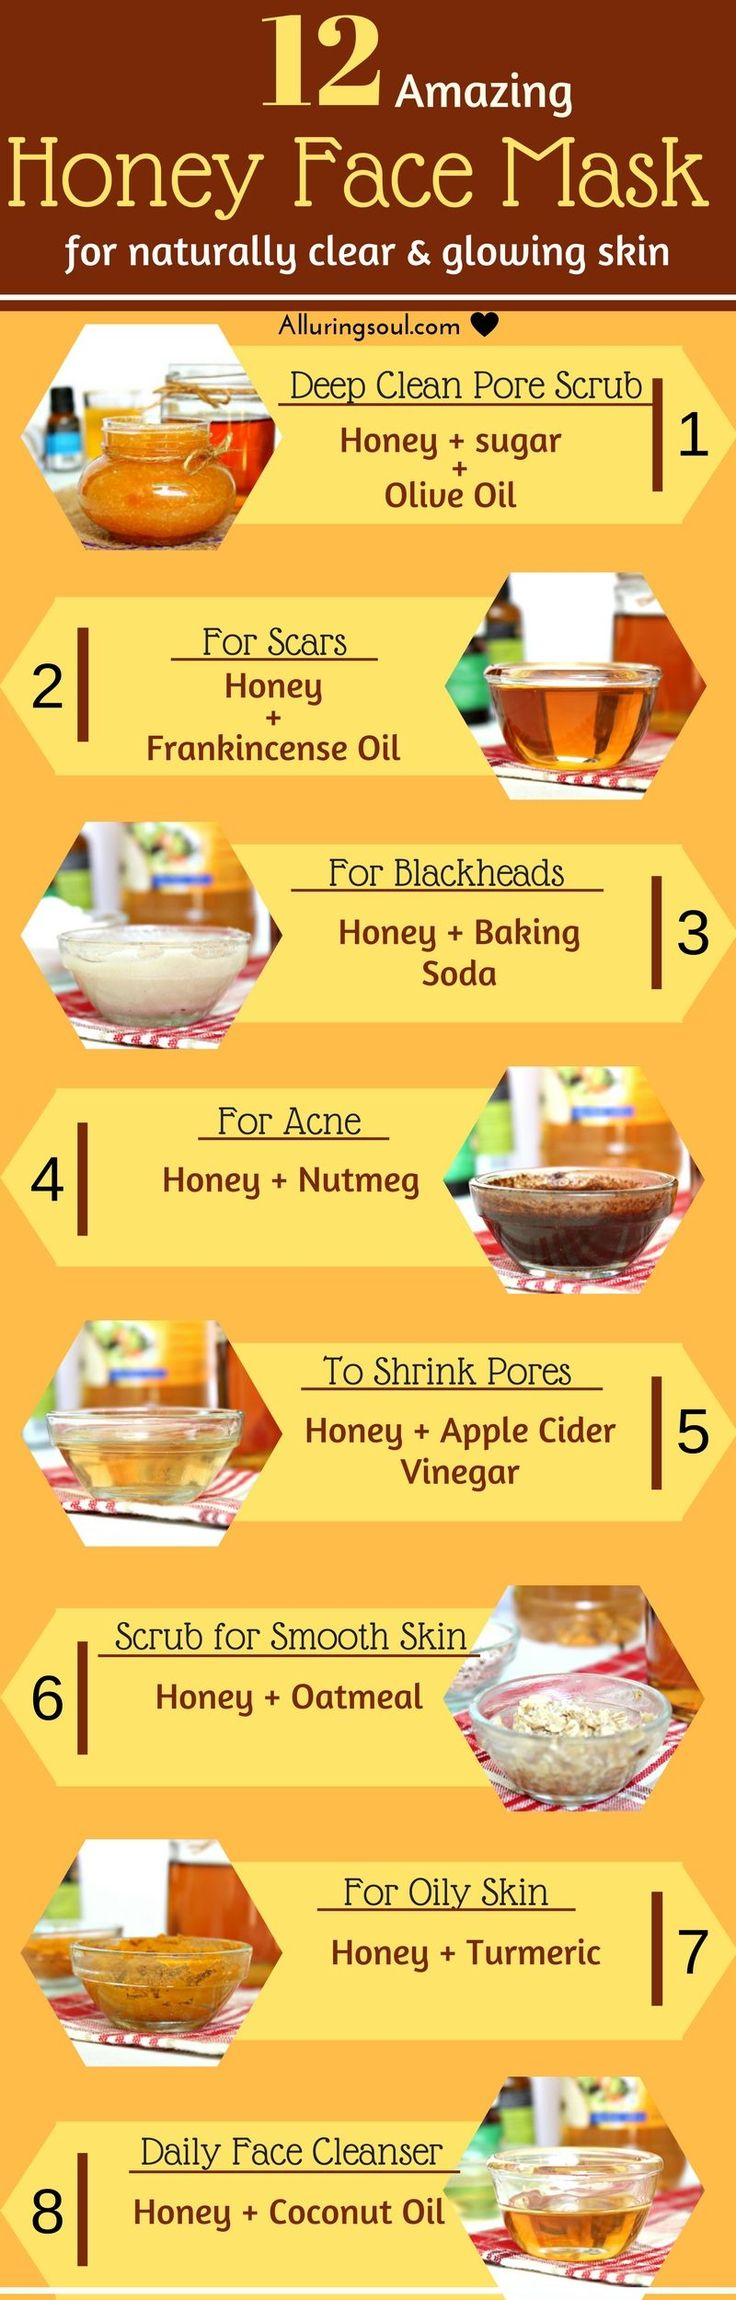 Honey face mask is the oldest remedy to treat skin issues. It can heal skin wound, acne, wrinkles and a great exfoliator too. Its anti-bacterial property protects our skin from microbes attack. Check how can you get benefits of honey for your beautiful skin.